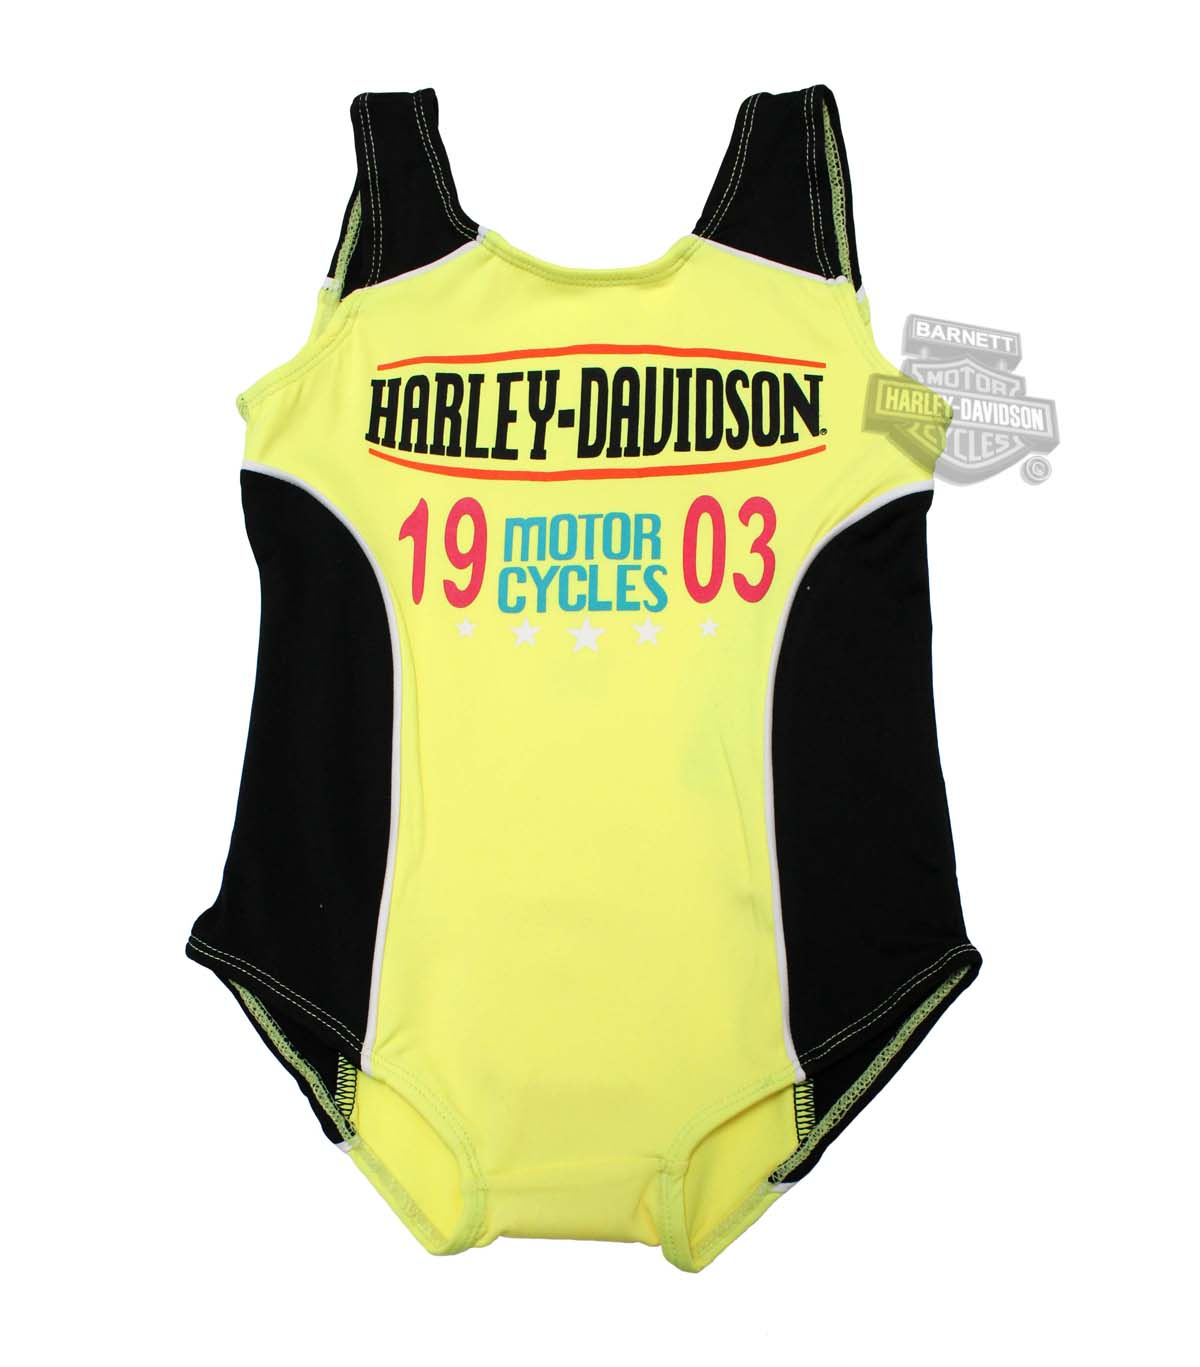 ** SIZE 10/12 ONLY ** Harley-Davidson® Girls Youth One Piece Safety Yellow Swimsuit